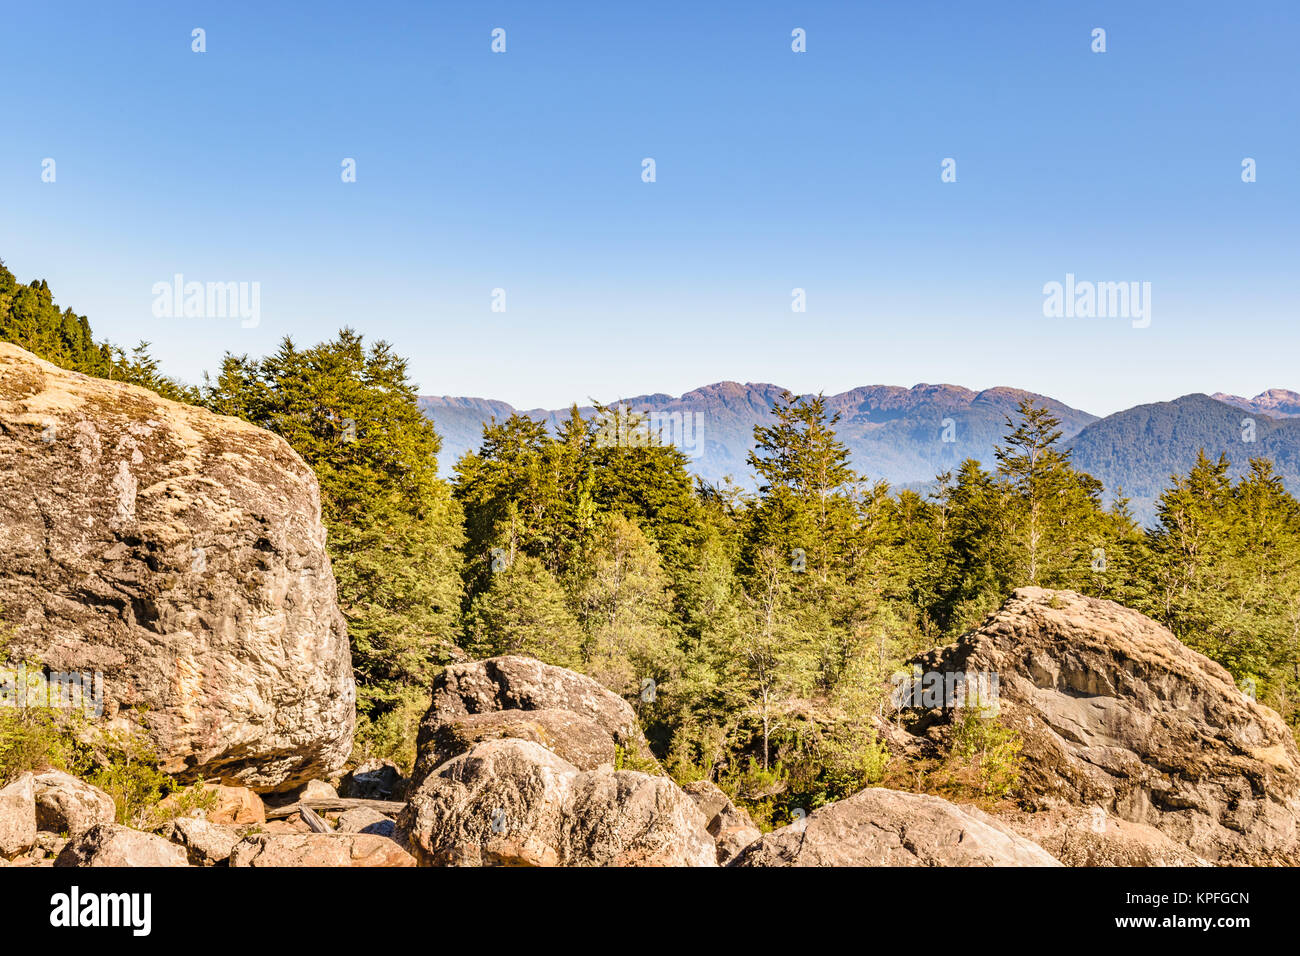 Patagonia landscape forest scene at queulat national park, aysen, chile - Stock Image